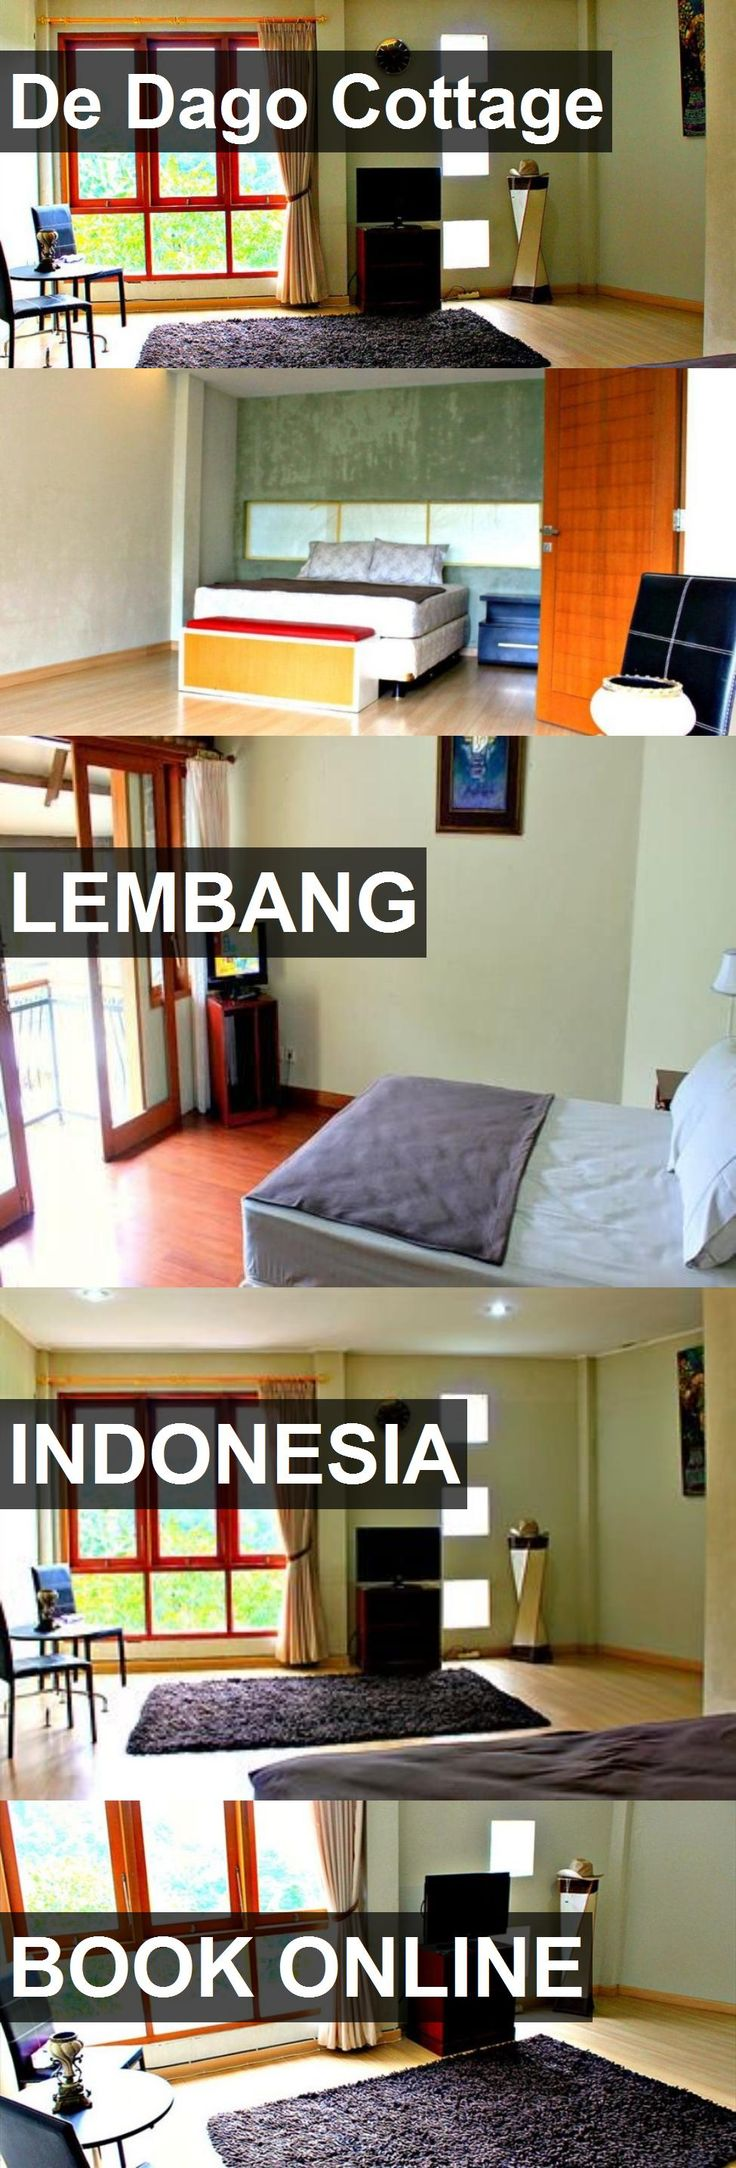 Hotel De Dago Cottage in Lembang, Indonesia. For more information, photos, reviews and best prices please follow the link. #Indonesia #Lembang #travel #vacation #hotel